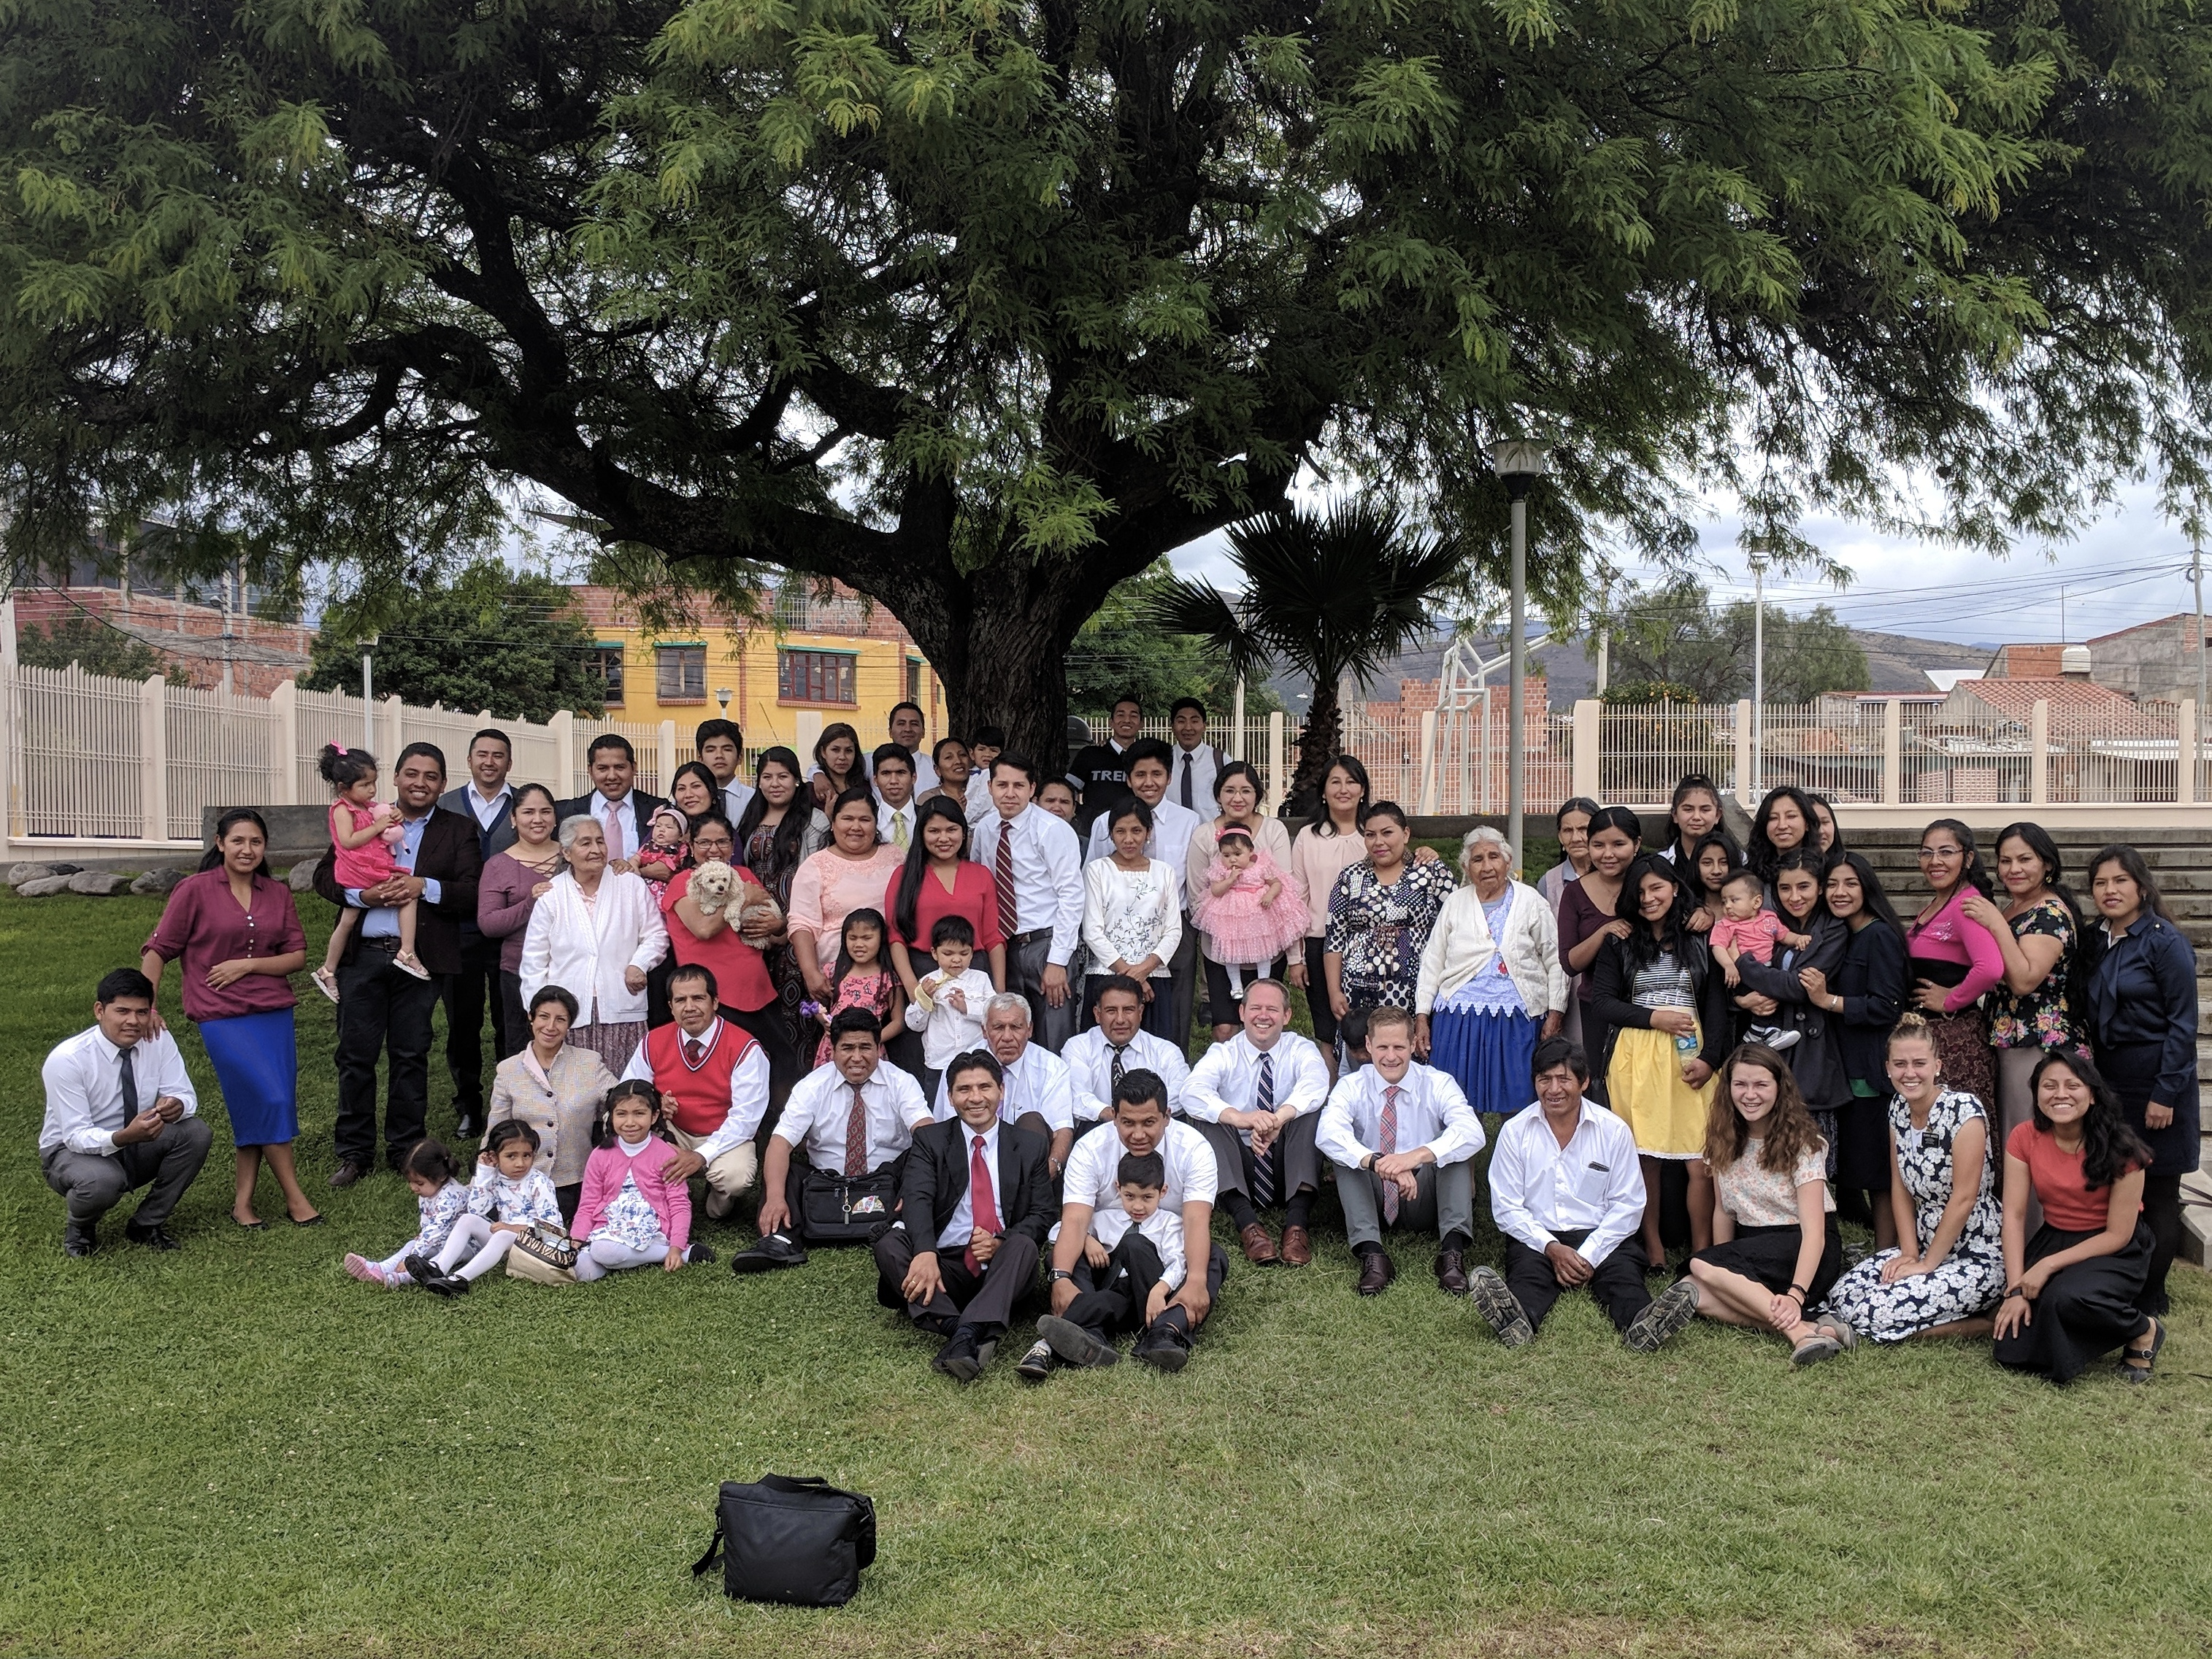 Members of the Tabladita area in Tarija Bolivia, many of whom are related to Naval Sanchez, gathered together in October when several missionaries that helped convert them some 20 years ago came to visit the area.